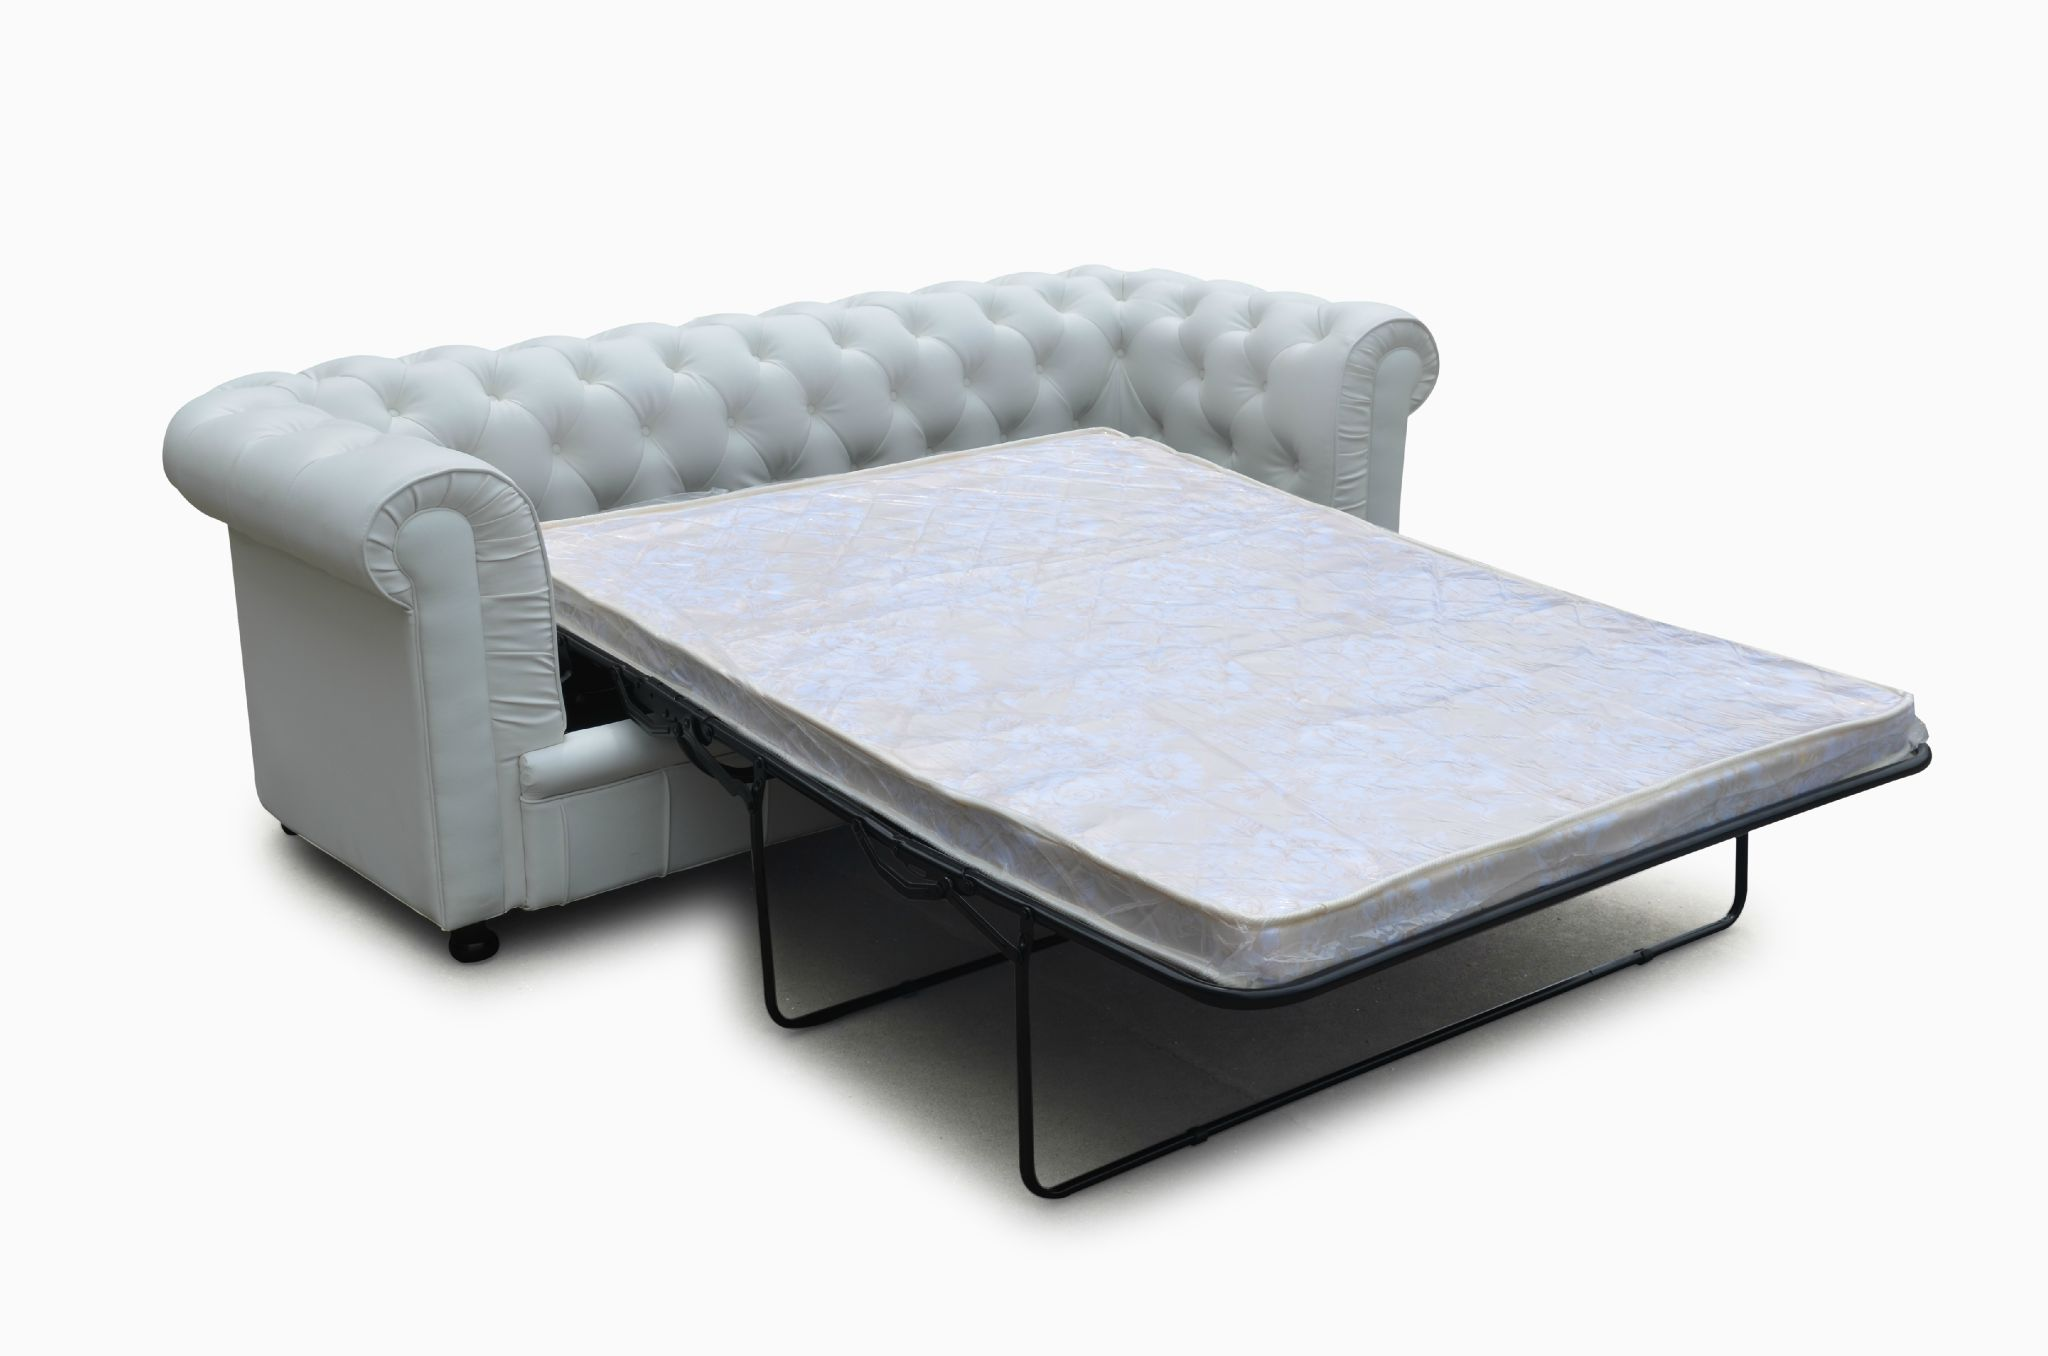 Nouveau Canap Chesterfield 3 Places Convertibles Espaceadesign # Canape Haut Parleur Integre